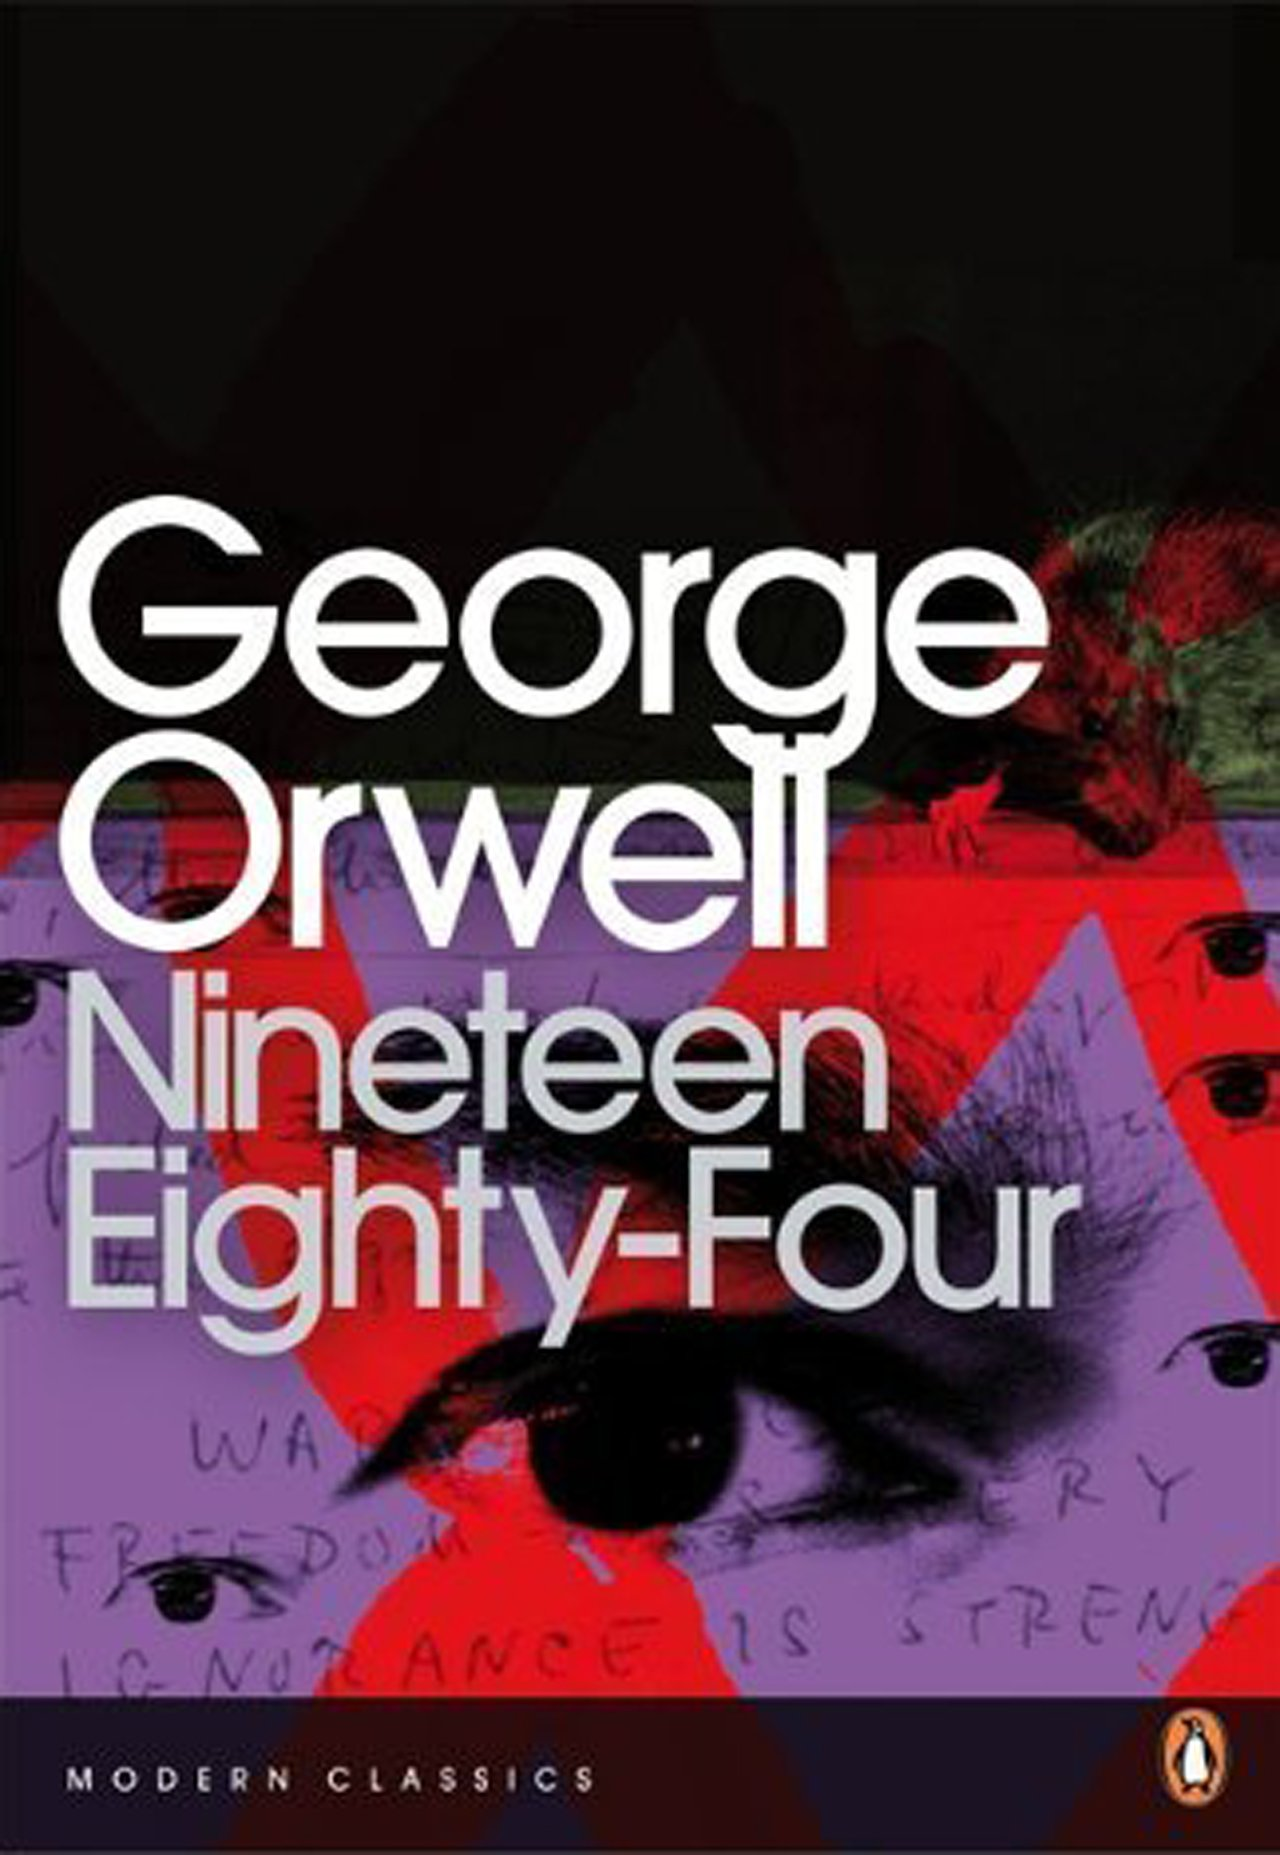 Animal Farm and       Amazon de  George Orwell  A M  Heath     Pinterest Amazon basically guaranteed that I ll never buy a Kindle last night by  bending to the wishes of a publisher and deleting every single  legitimately purchased